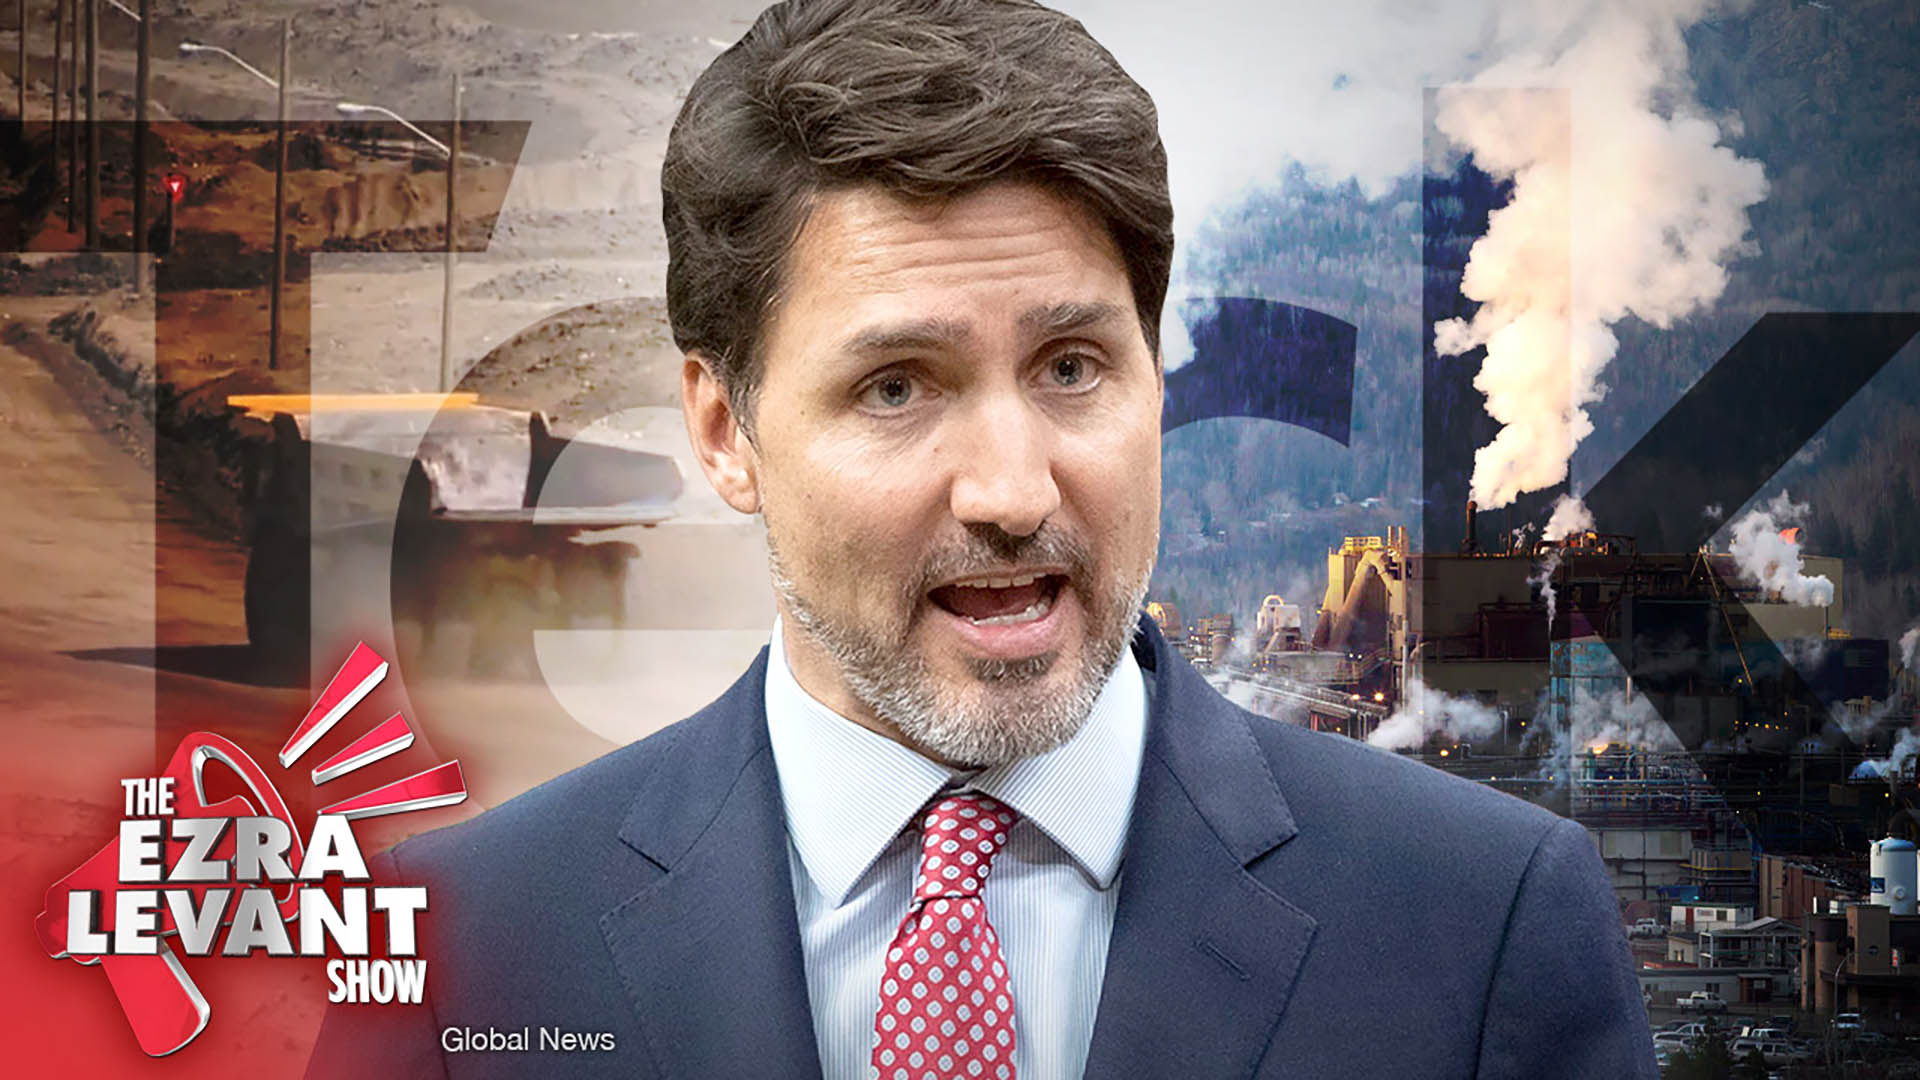 Teck oilsands mine is now cancelled — Company cites Trudeau's lawlessness as key reason